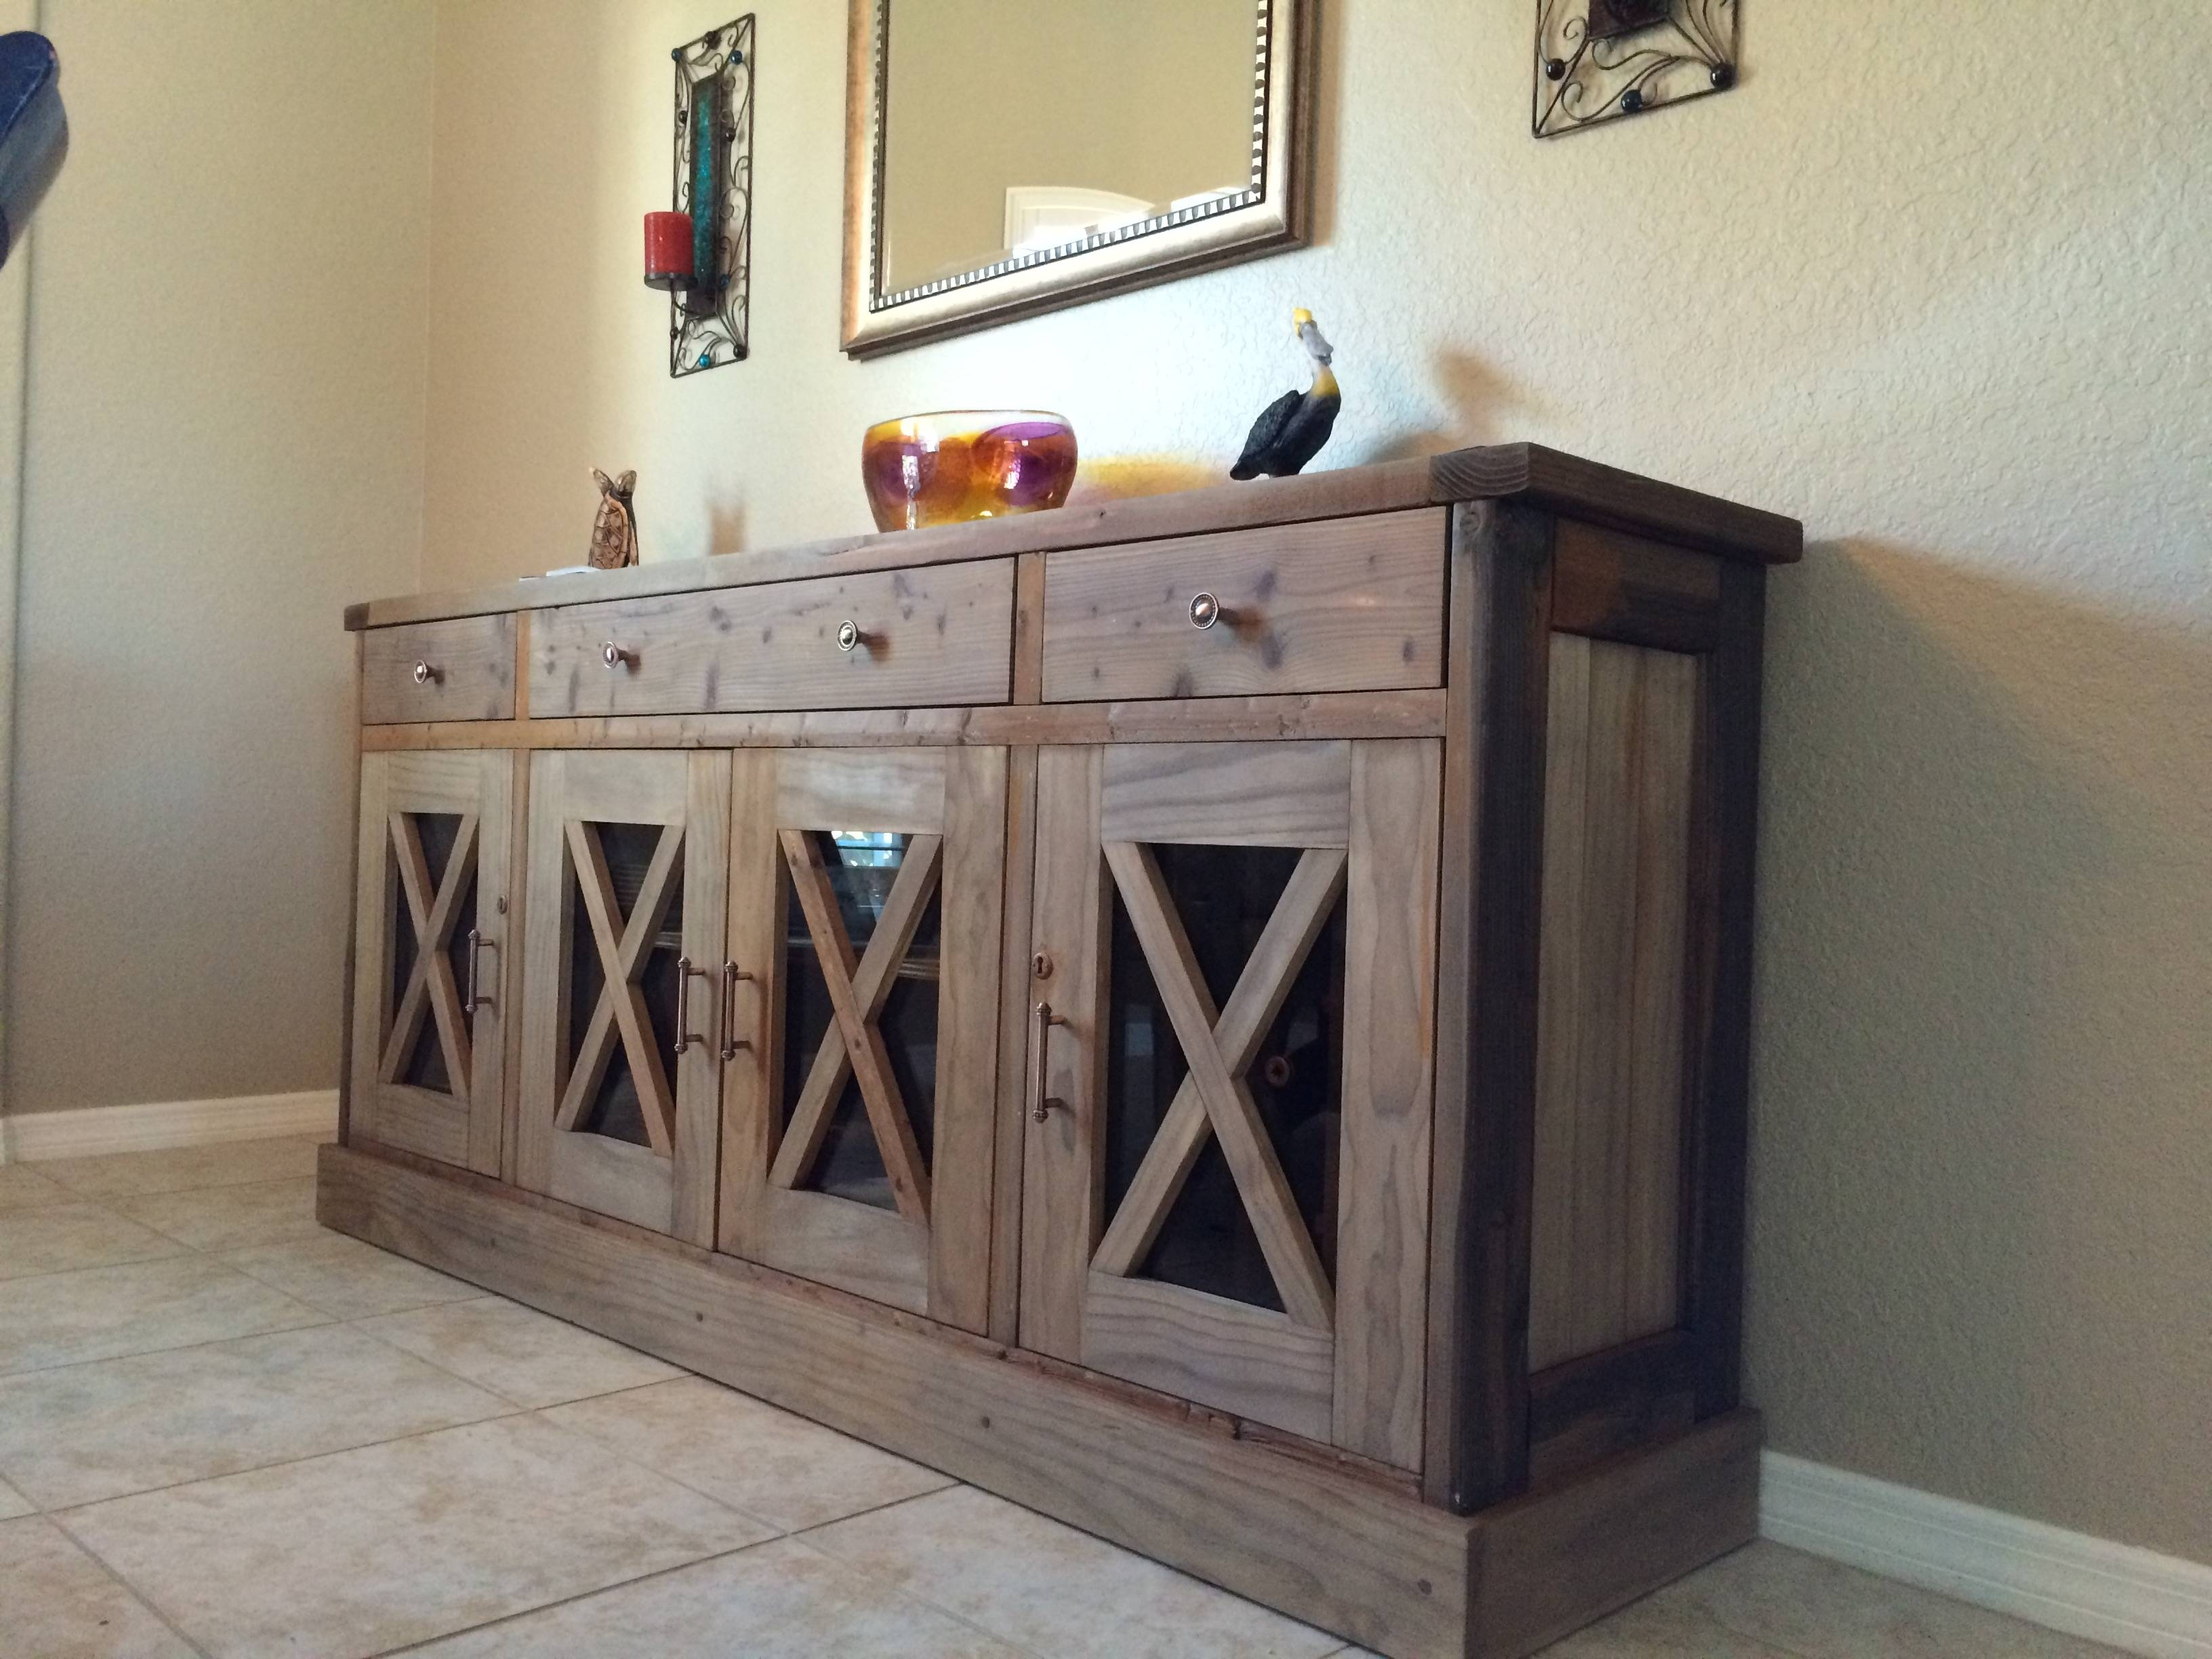 Ana White | Dining Room Sideboard – Diy Projects Within Diy Sideboards (View 9 of 15)